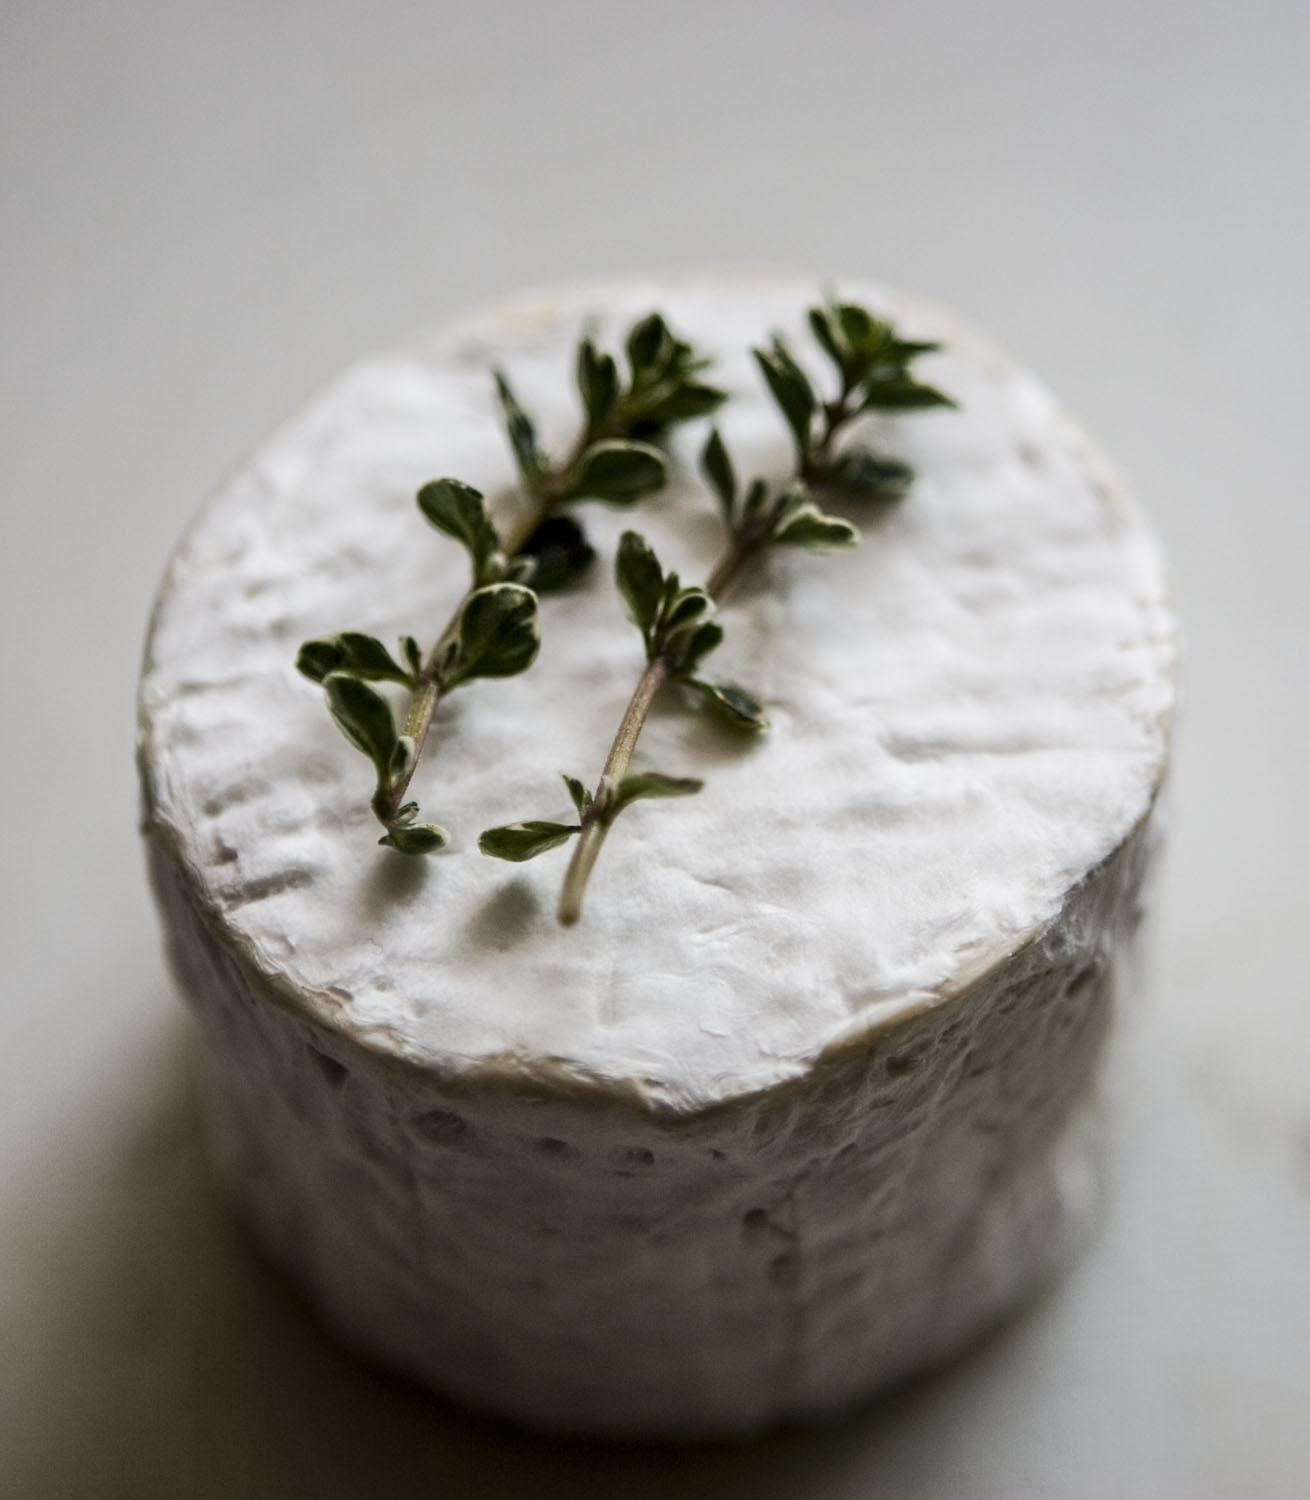 Goats cheese with lemon thyme 1